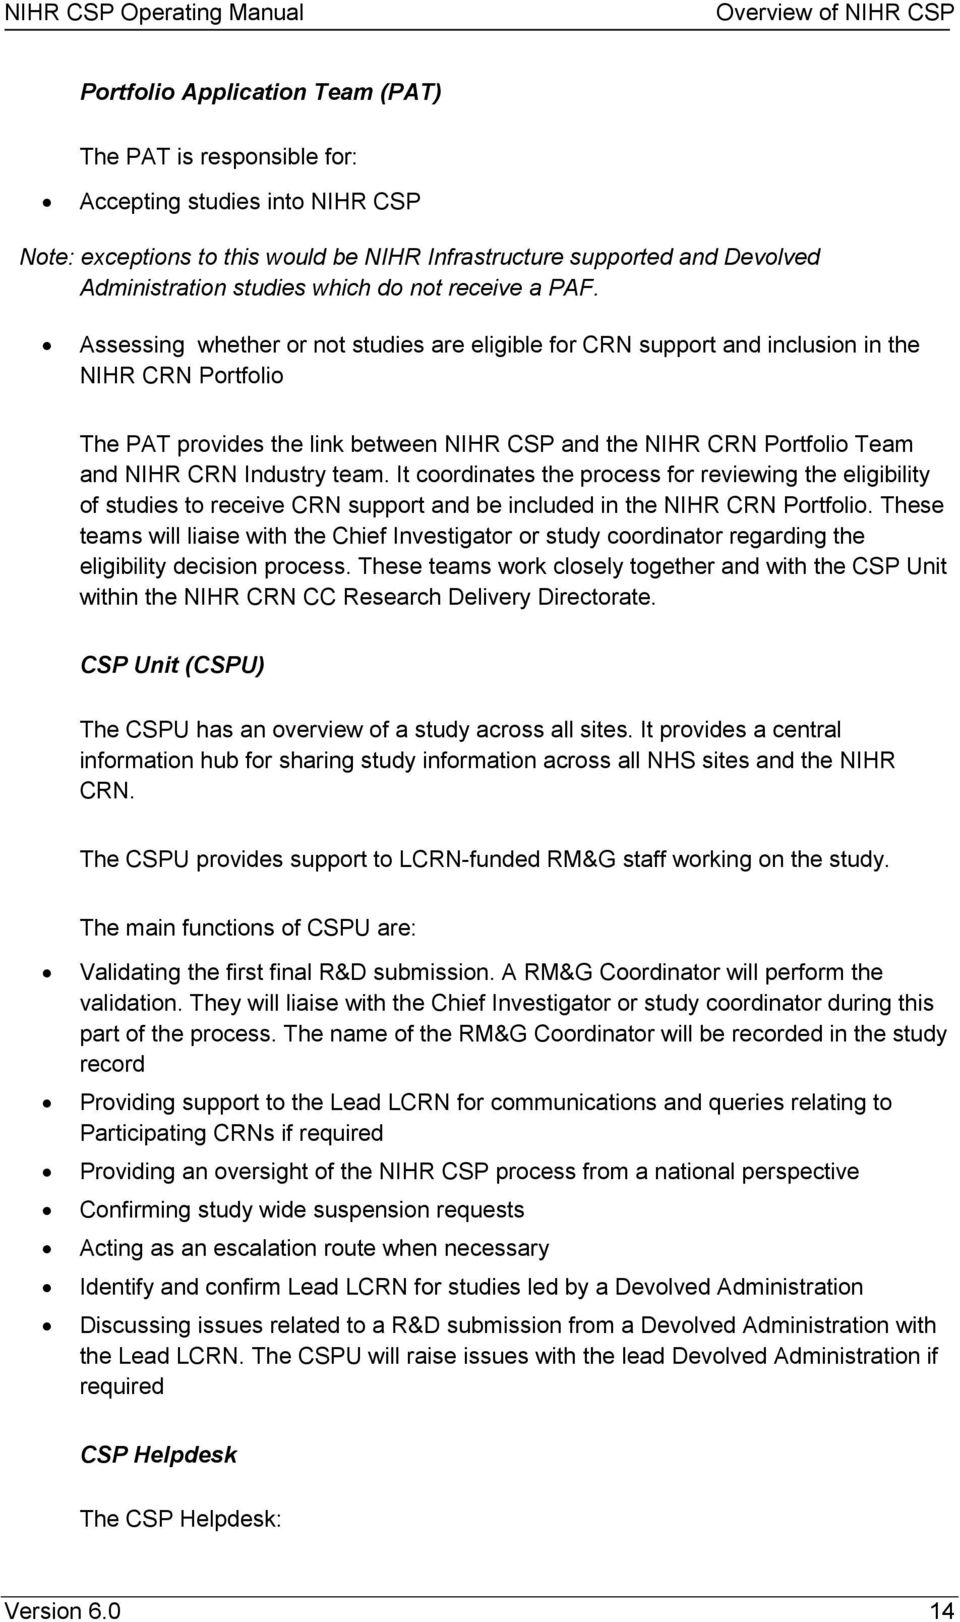 Assessing whether or not studies are eligible for CRN support and inclusion in the NIHR CRN Portfolio The PAT provides the link between NIHR CSP and the NIHR CRN Portfolio Team and NIHR CRN Industry